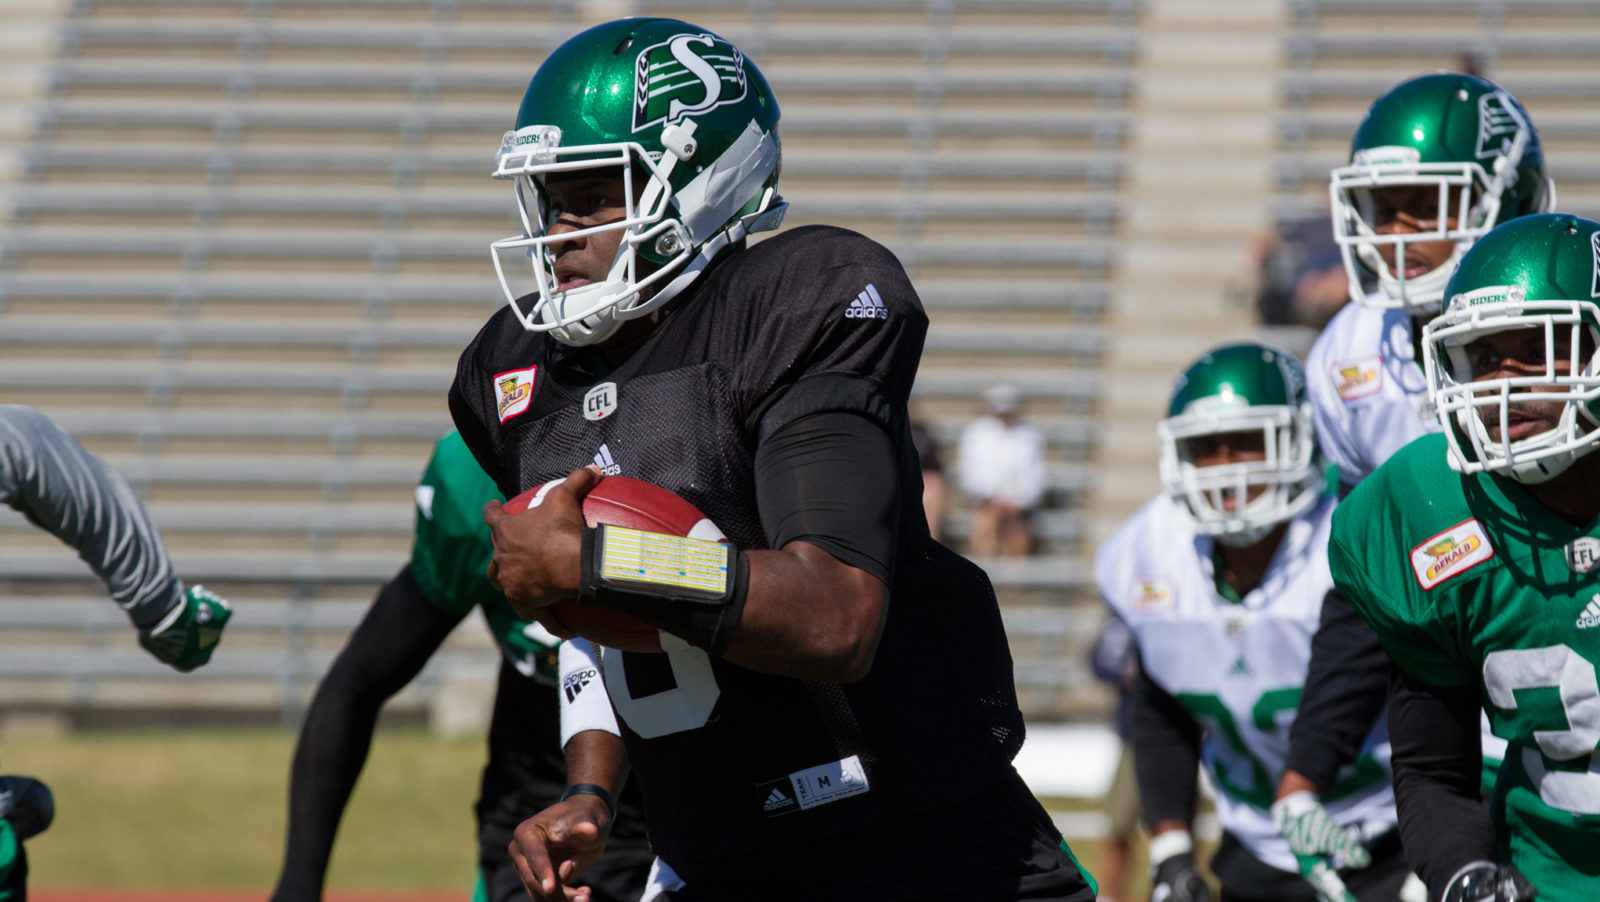 Former NFL QB Vince Young waived by Roughriders